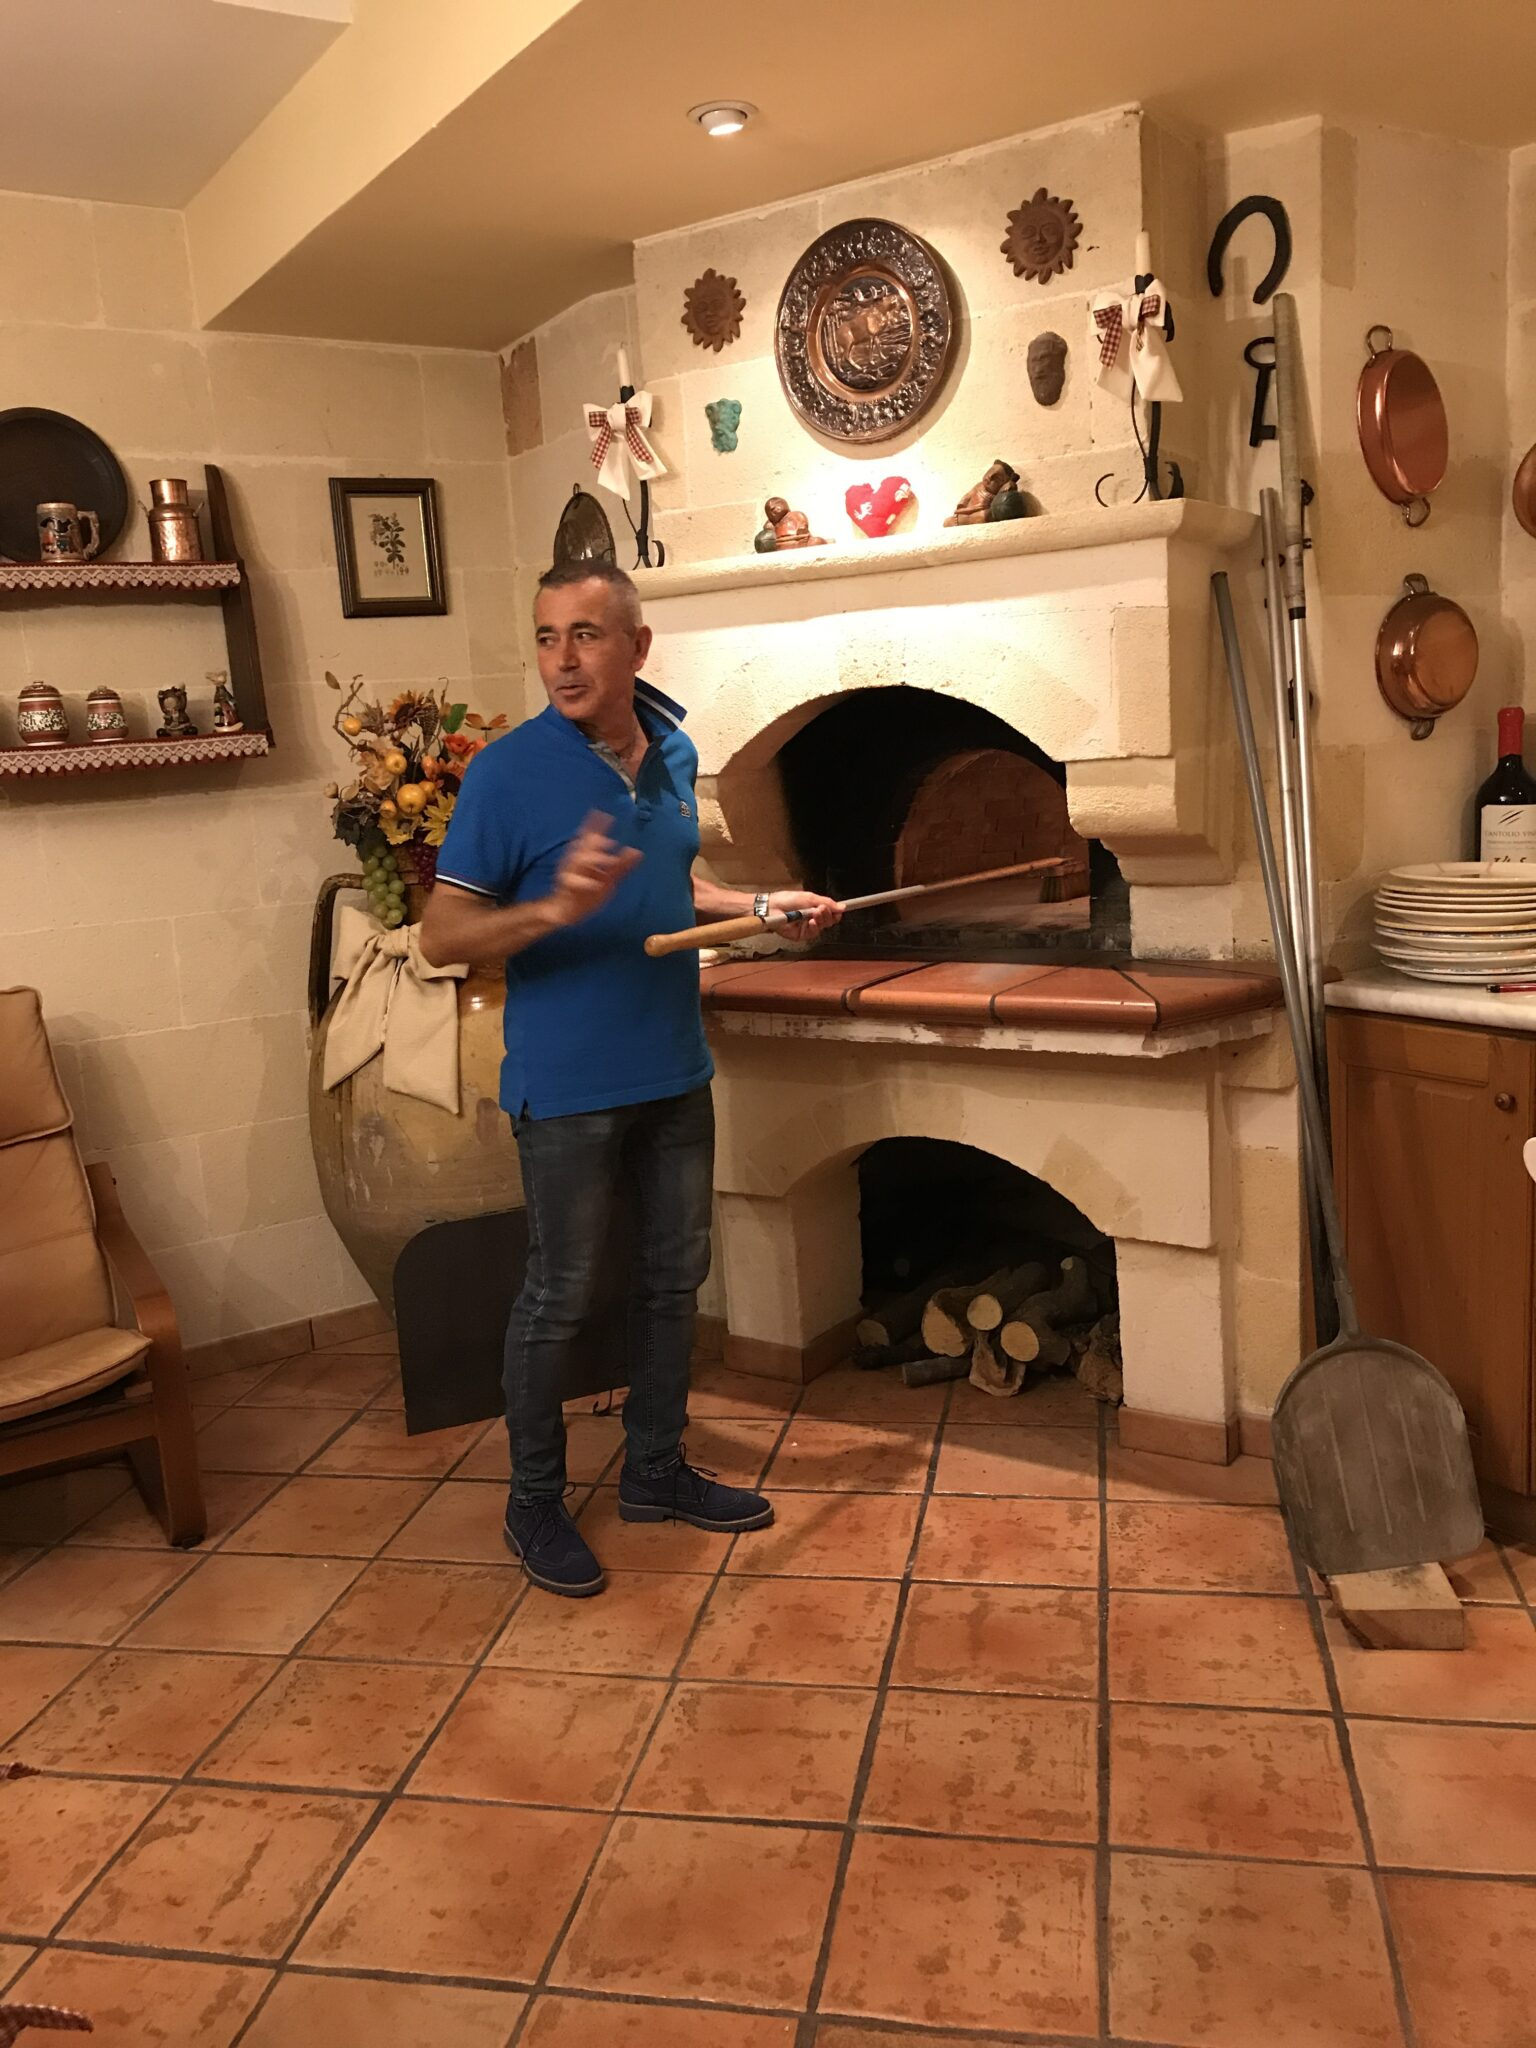 2017 – Puglia Region Day 1 – Travel Day to Manduria